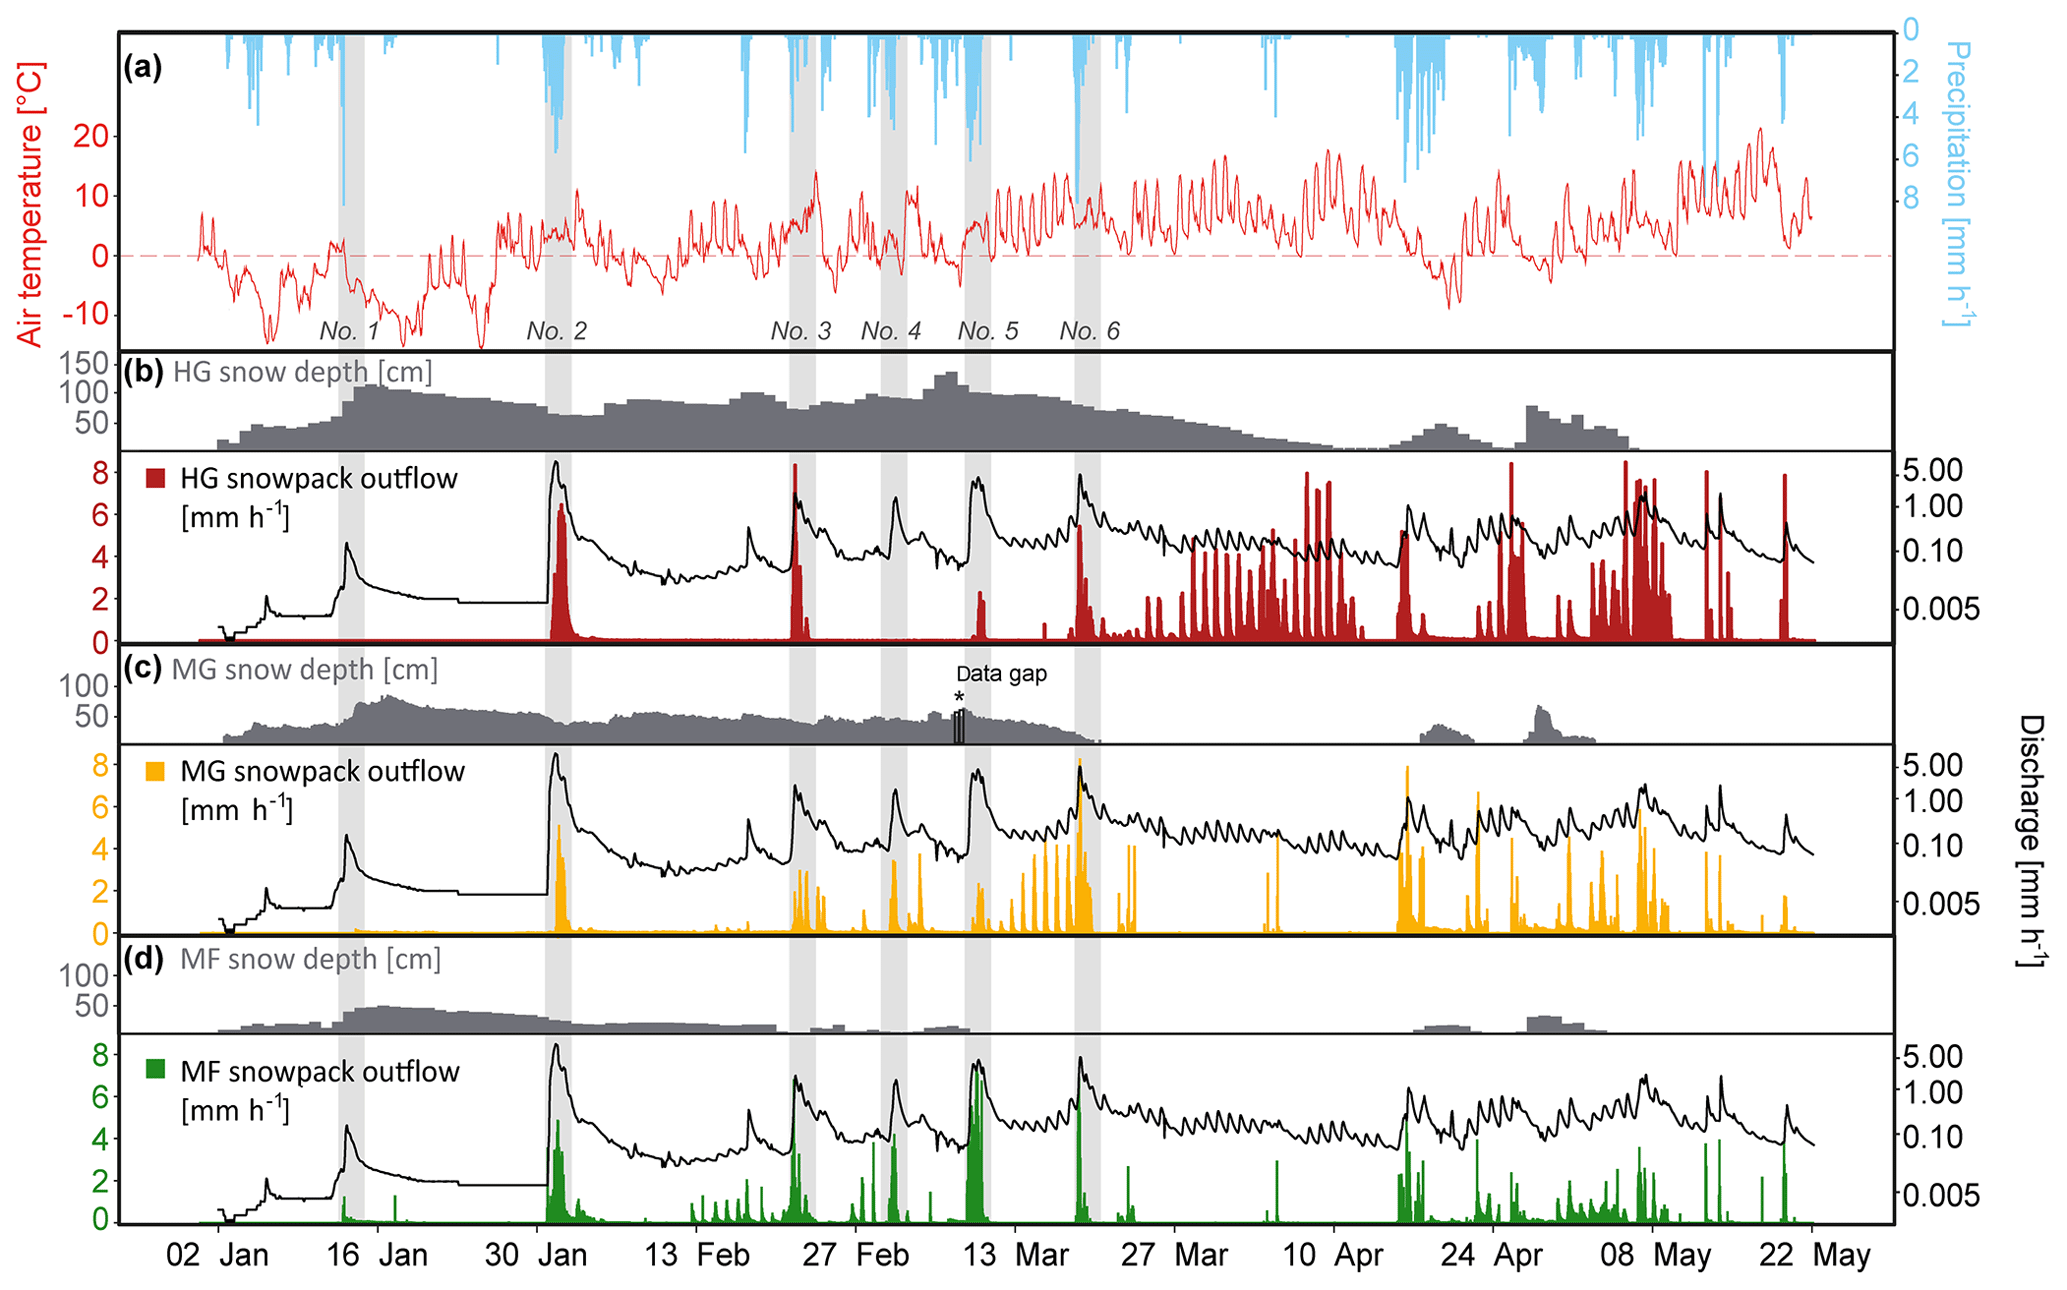 HESS - Monitoring snowpack outflow volumes and their isotopic